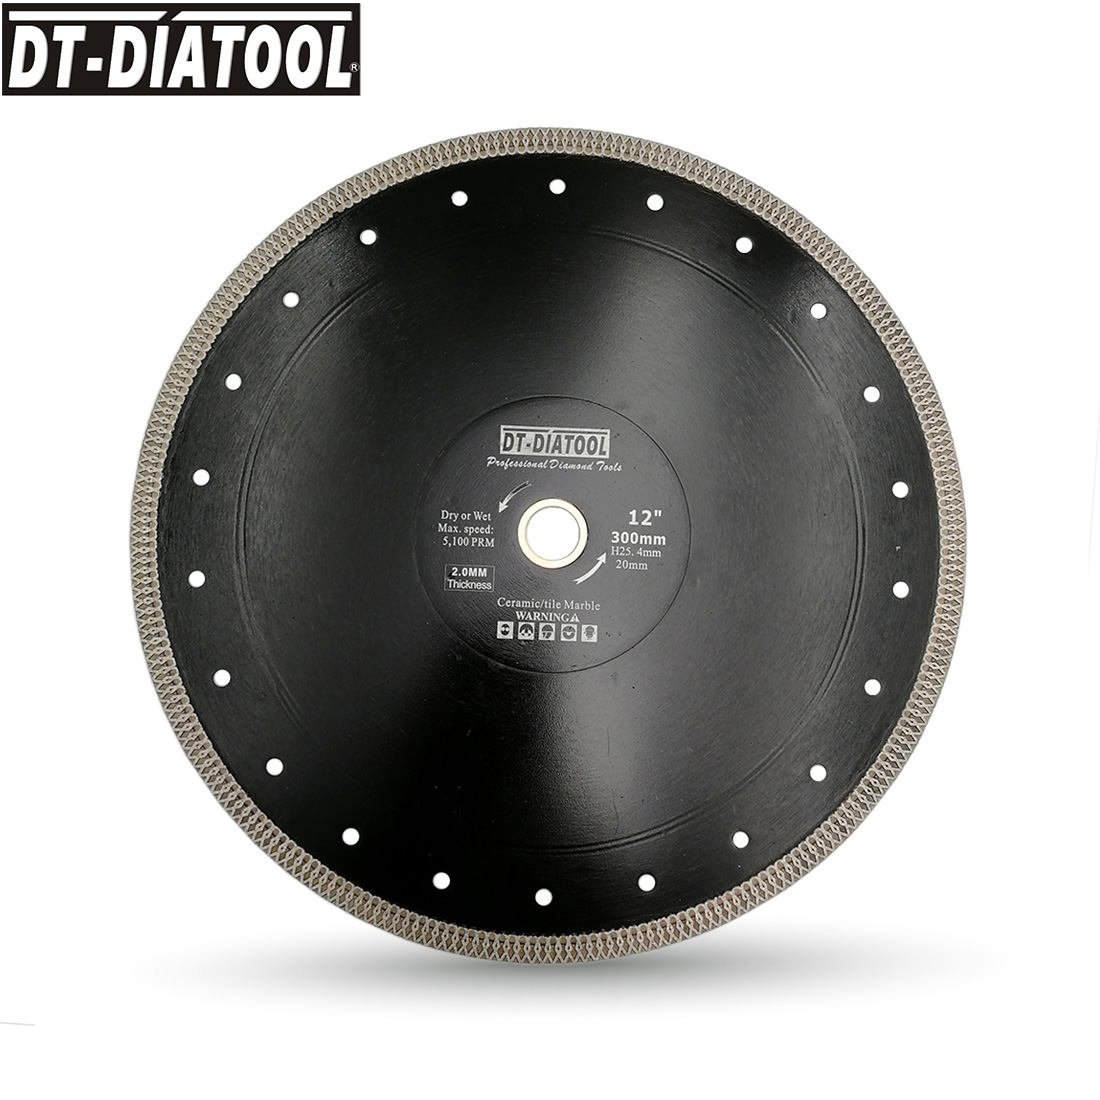 DT-DIATOOL 1pc Dia 300mm/12inch Hot-pressed High Quality Diamond Saw Blade X Mesh Turbo Cutting Disc Tile Marble Porcelain Blade